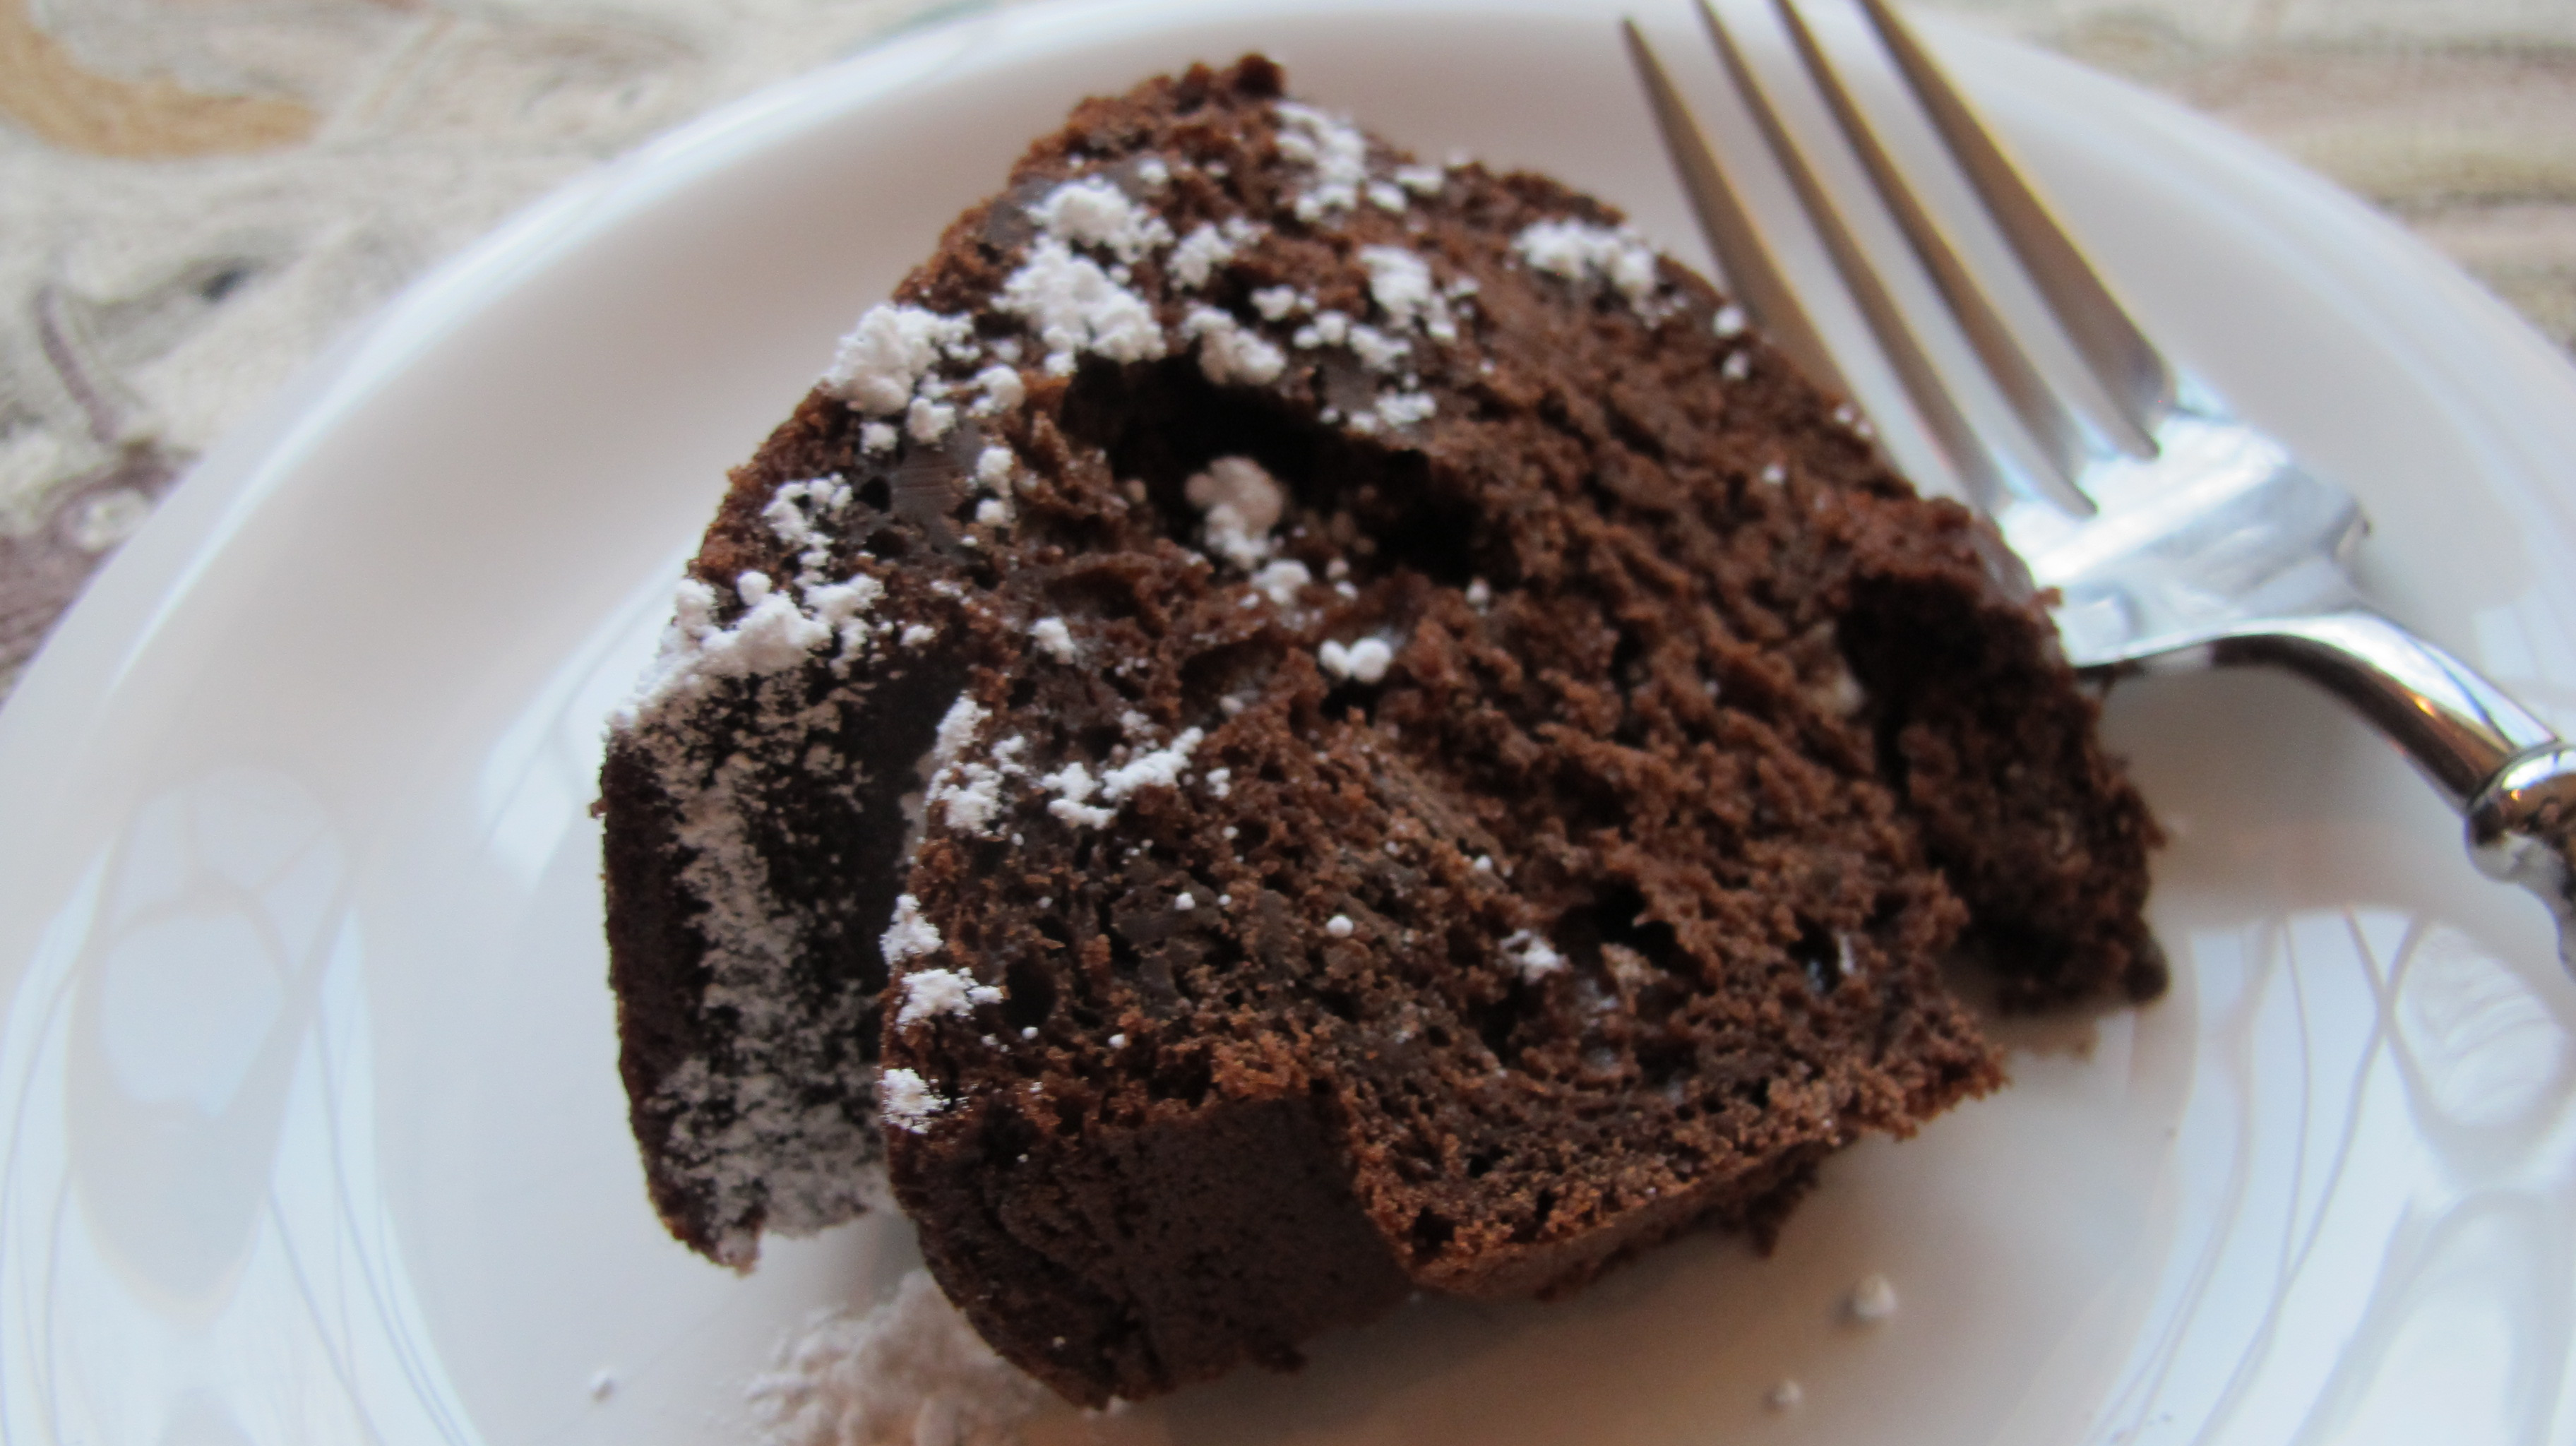 A Plate of Chocolate Bundt